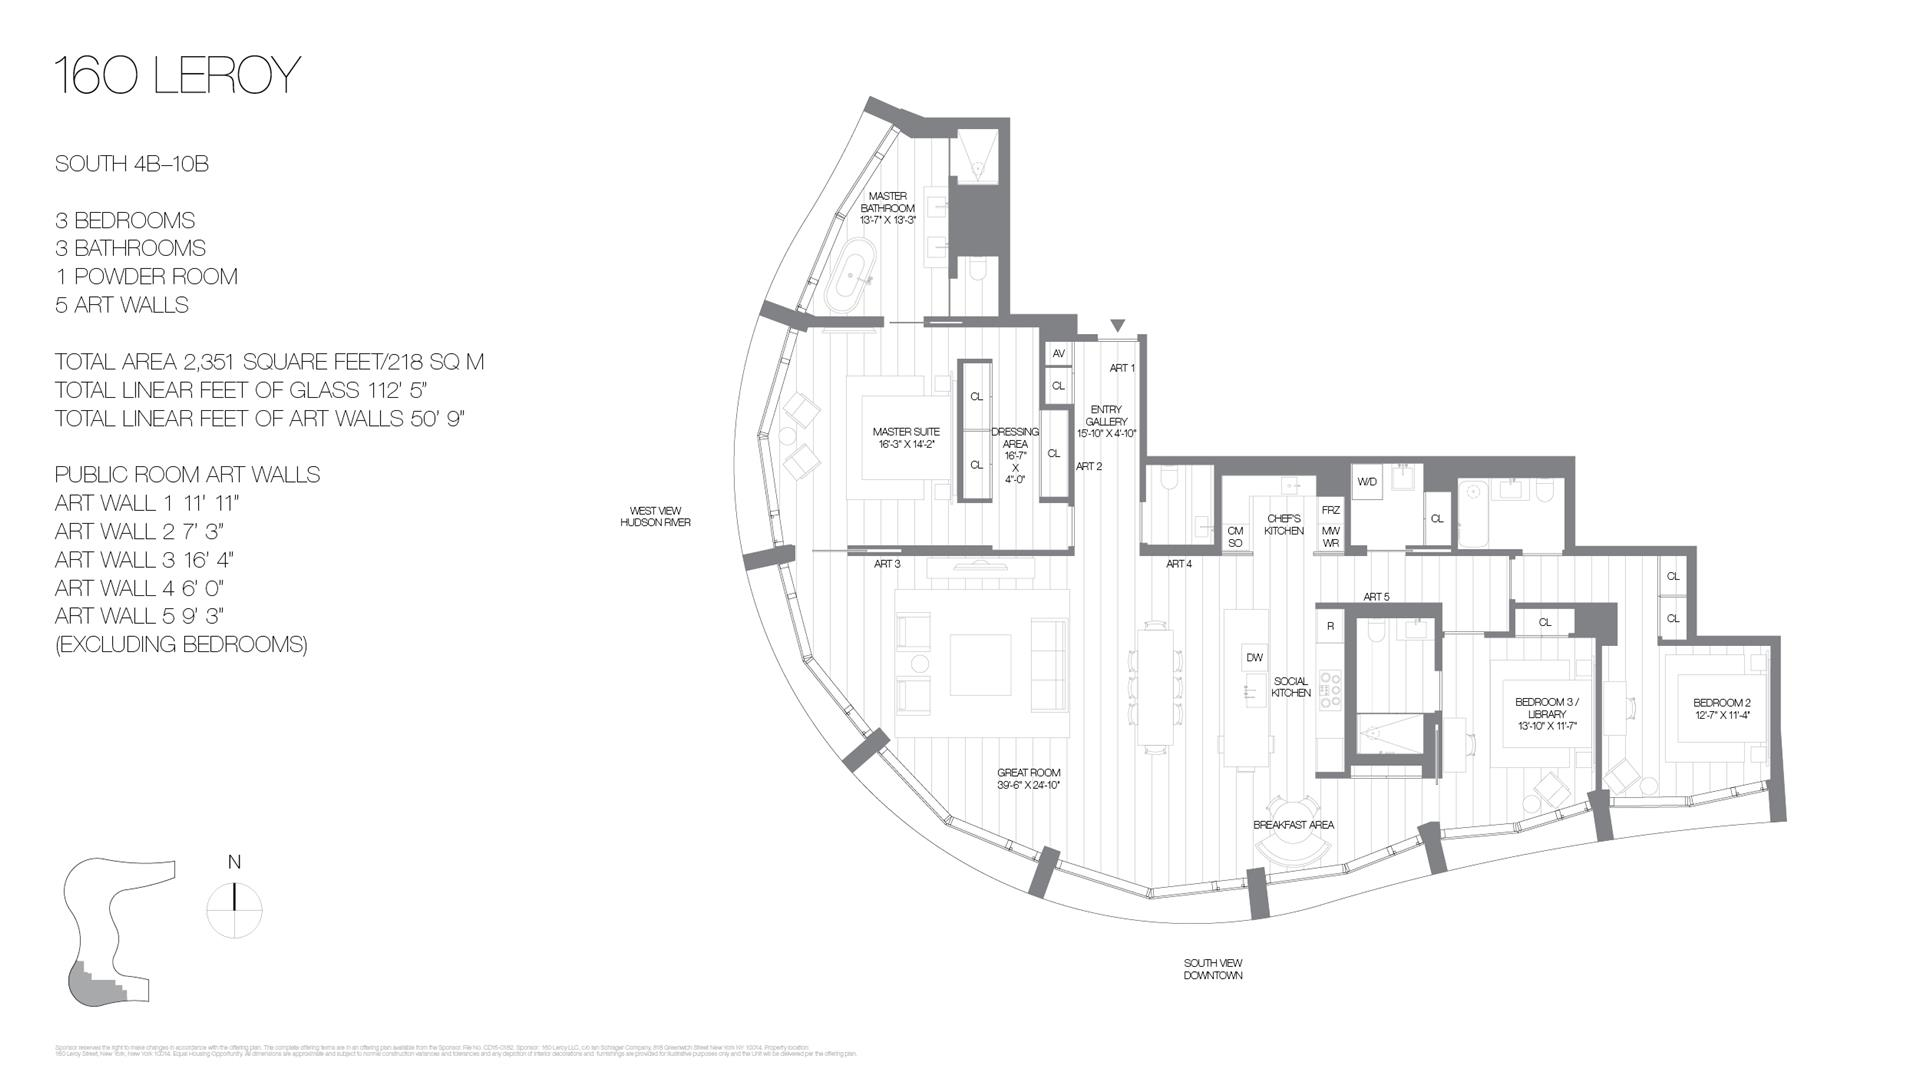 Floor plan of 160 Leroy St, SOUTH7B - West Village - Meatpacking District, New York